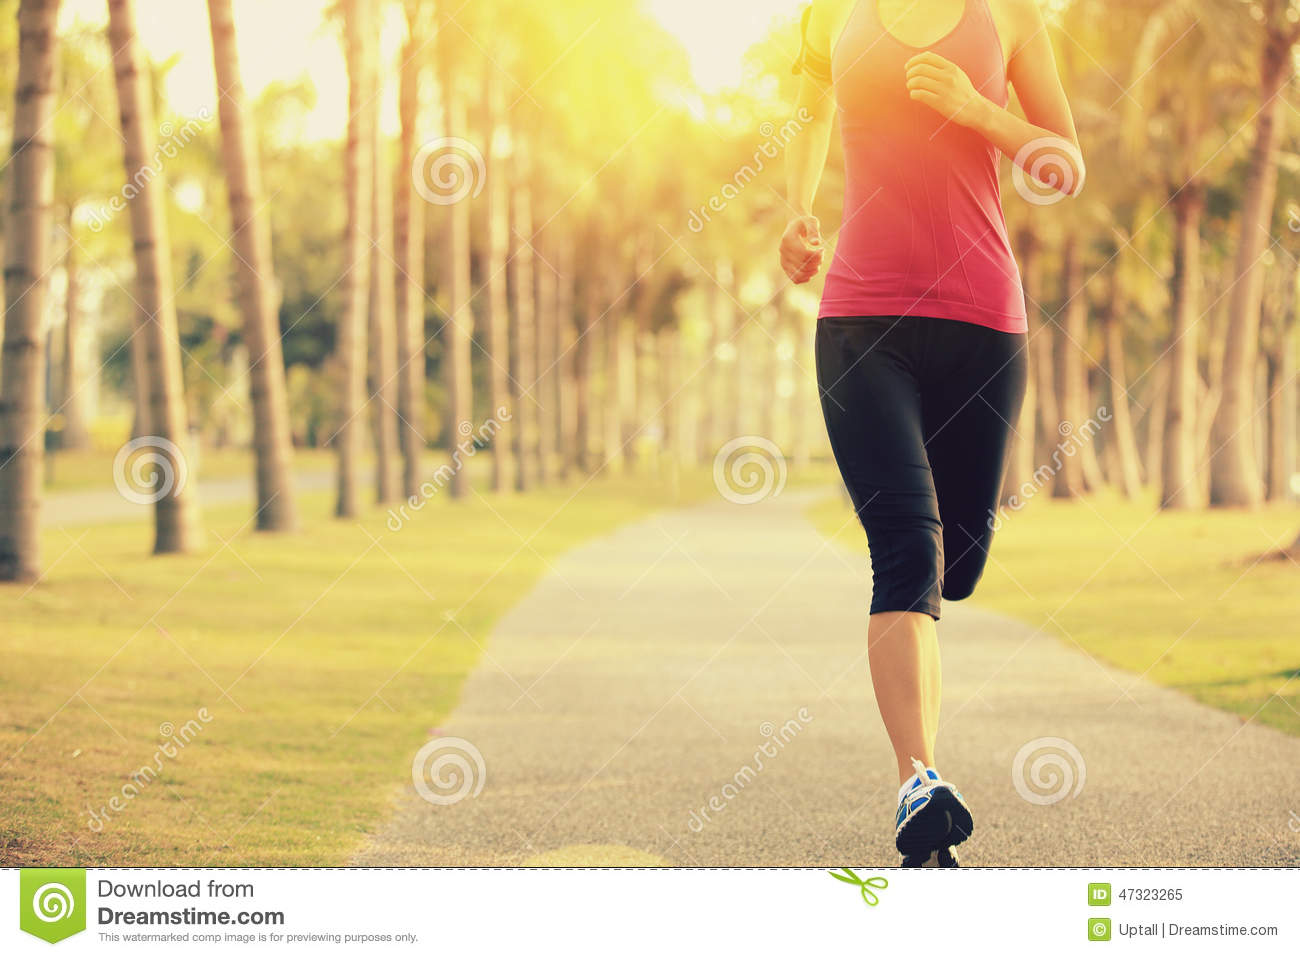 Runner athlete running at tropical park. woman fitness sunrise jogging workout